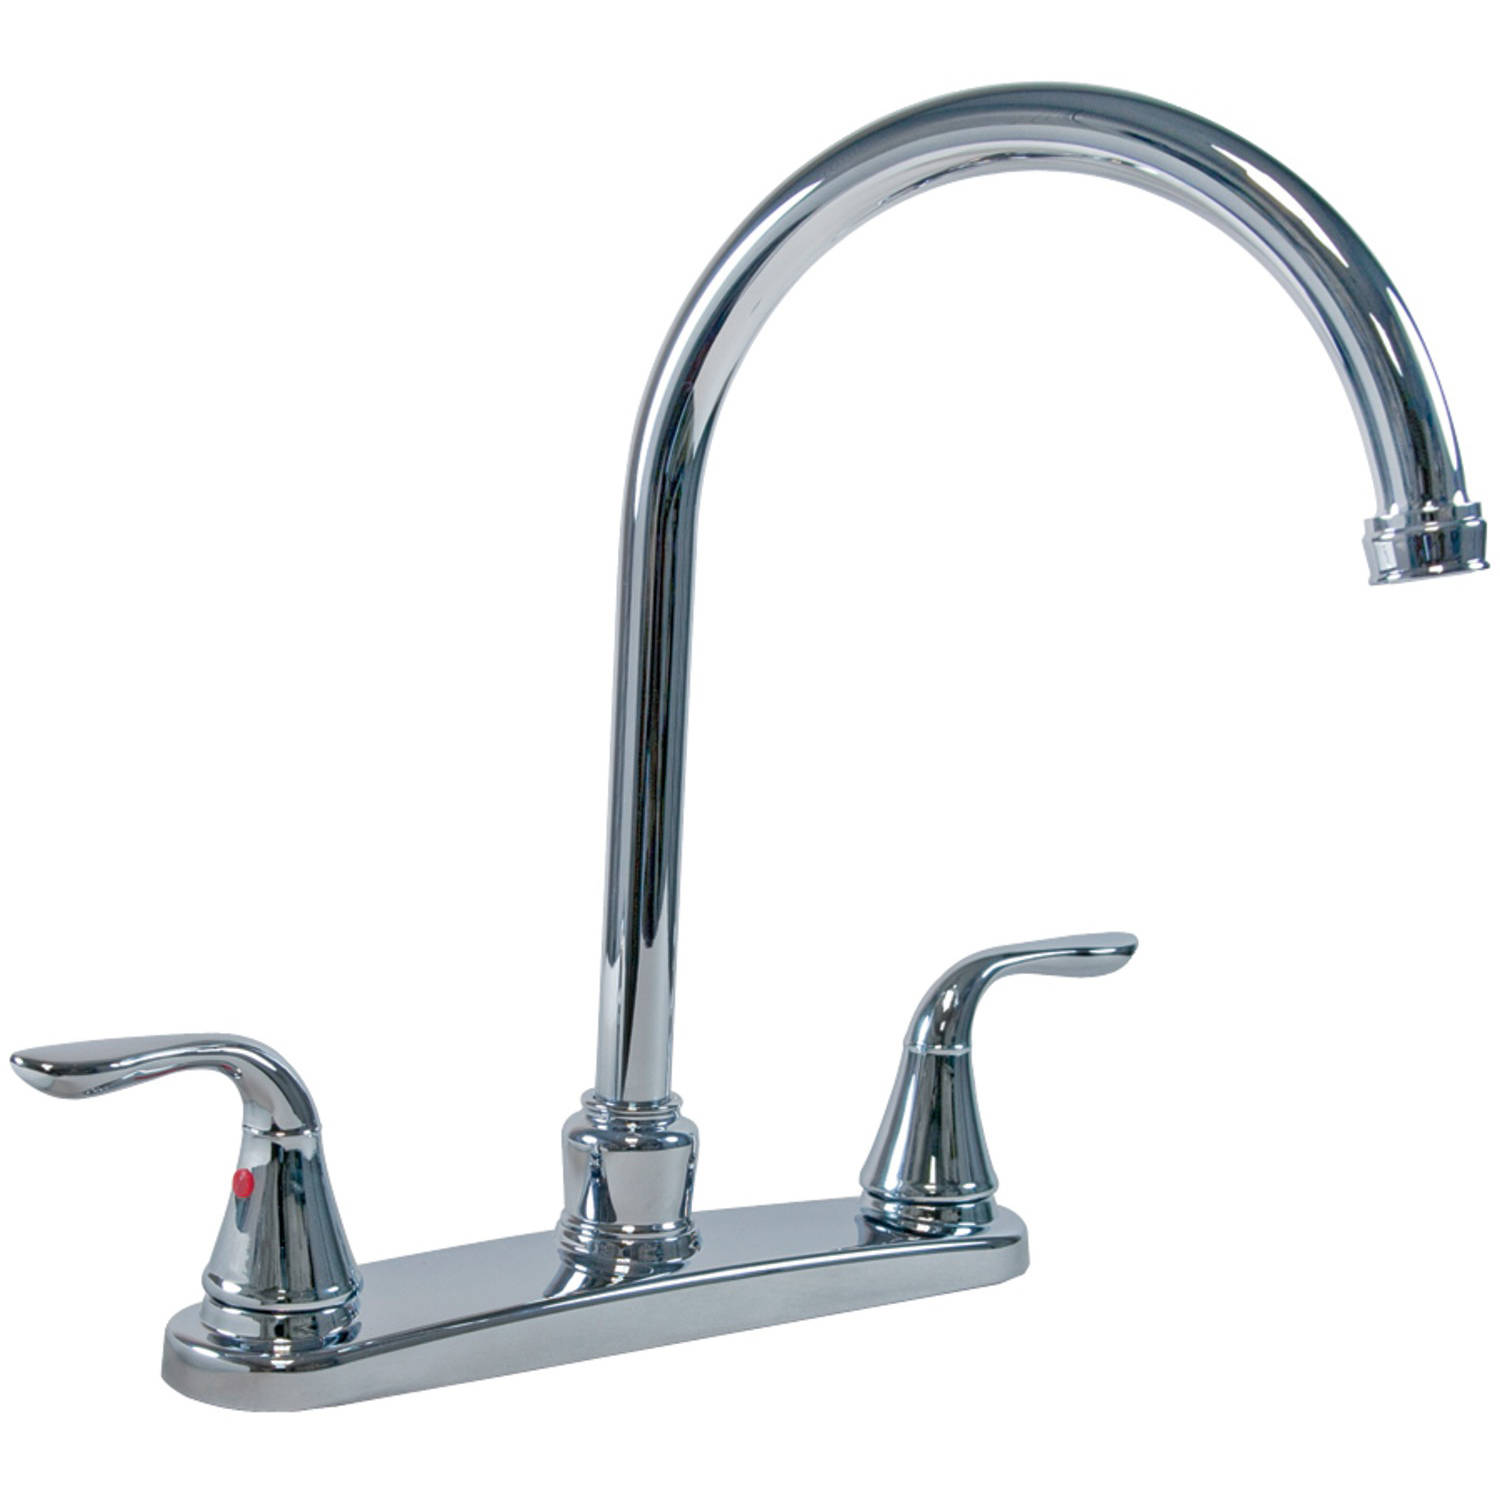 Aqua Plumb 1558030 Chrome Plated 2 Handle Gooseneck Kitchen Faucet